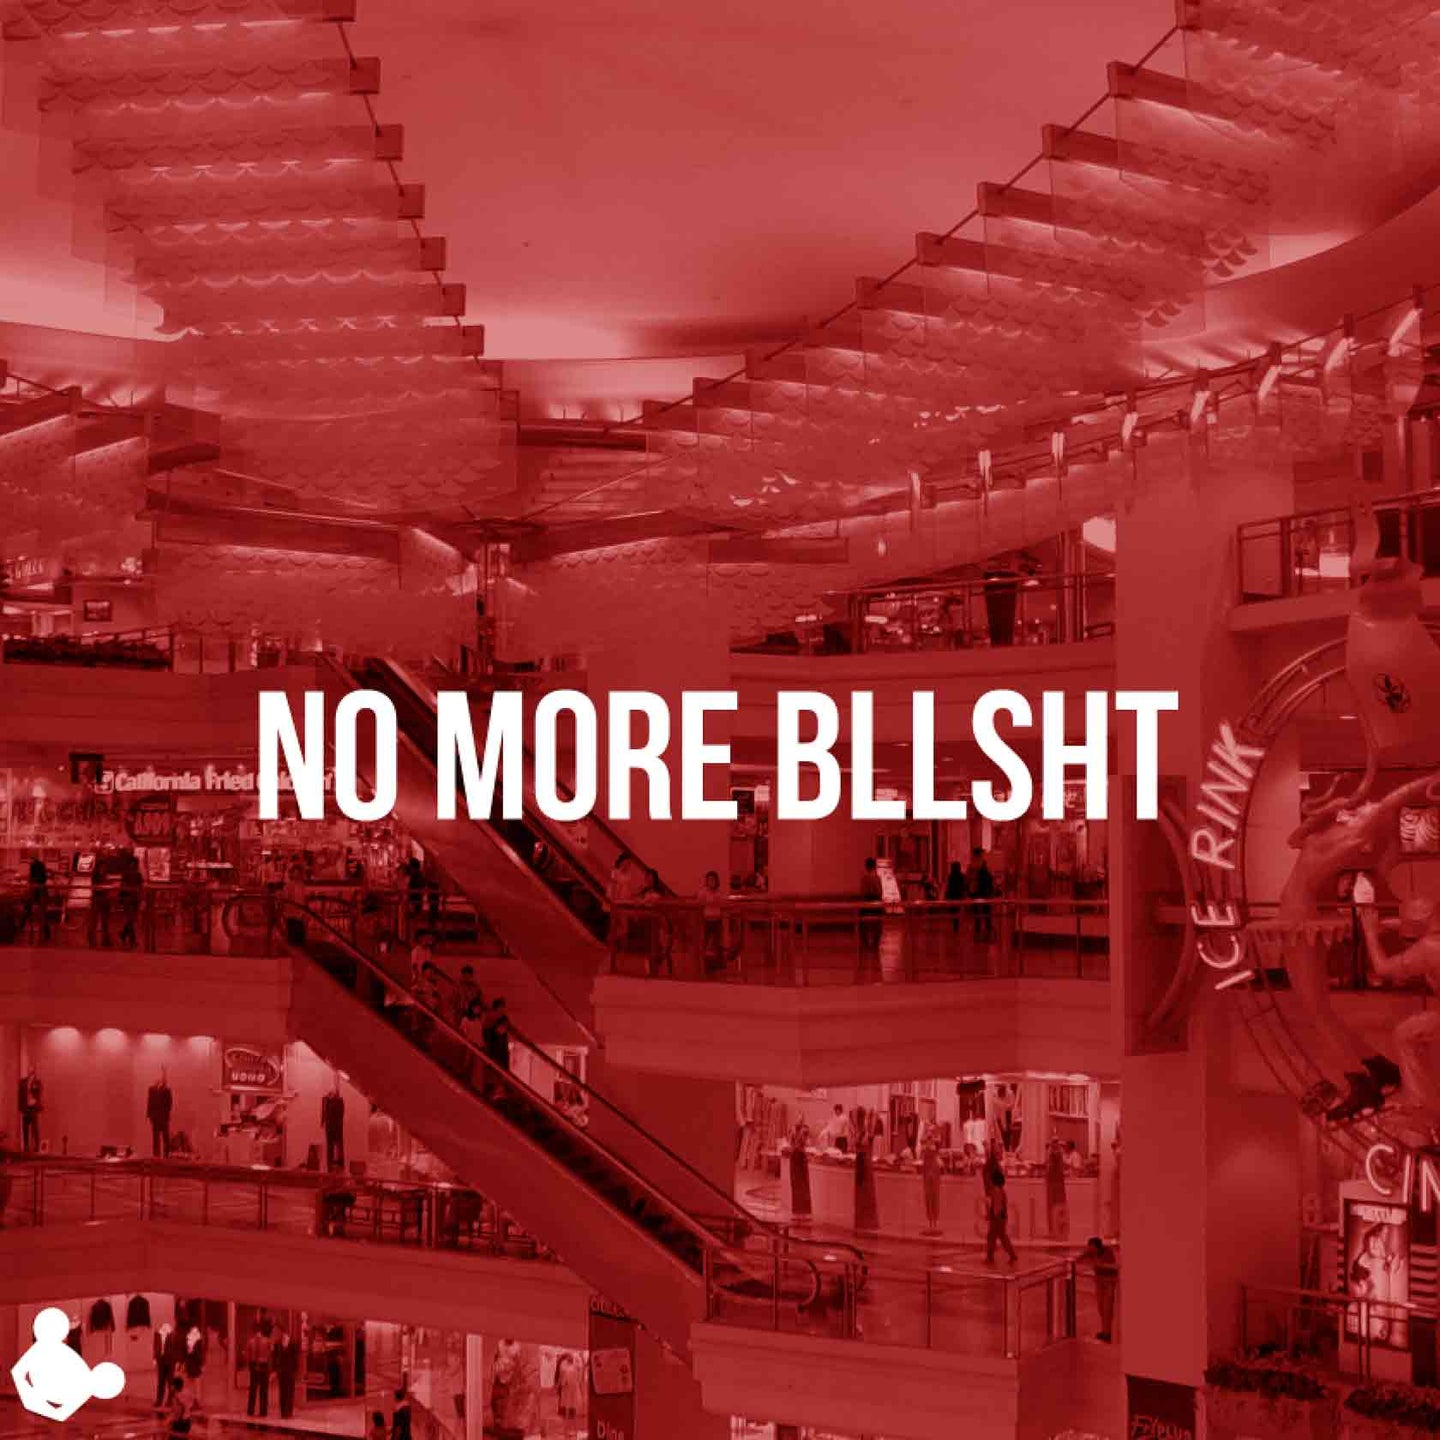 Shopping therapy? NO MORE BLLSHT